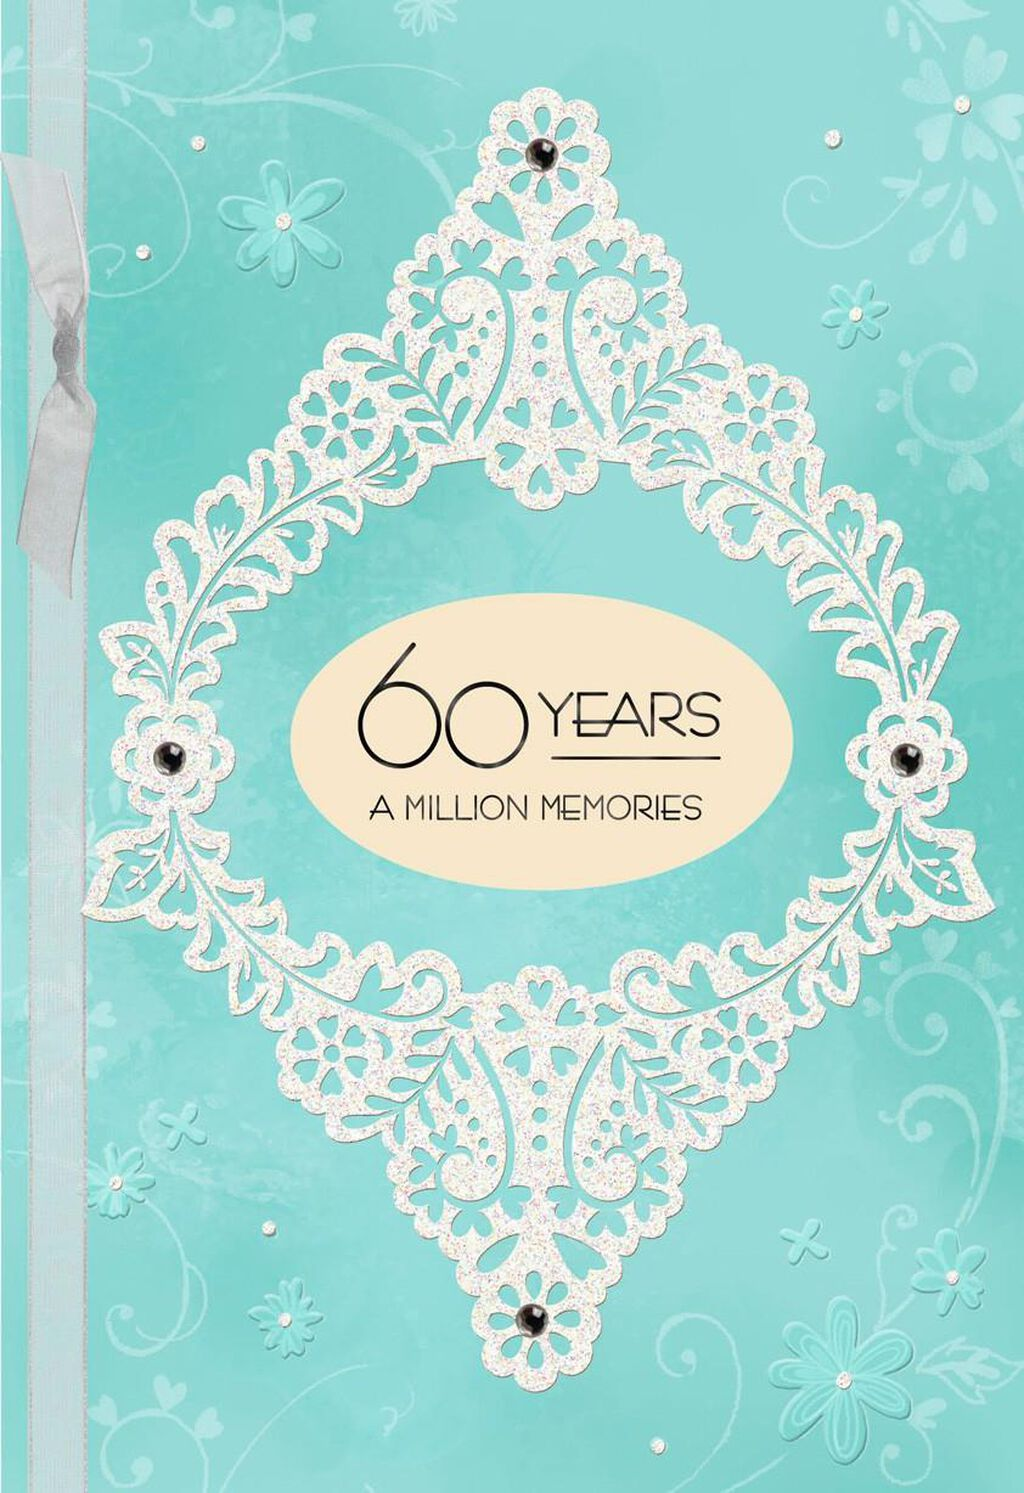 Blue and white floral 60th anniversary card greeting cards hallmark m4hsunfo